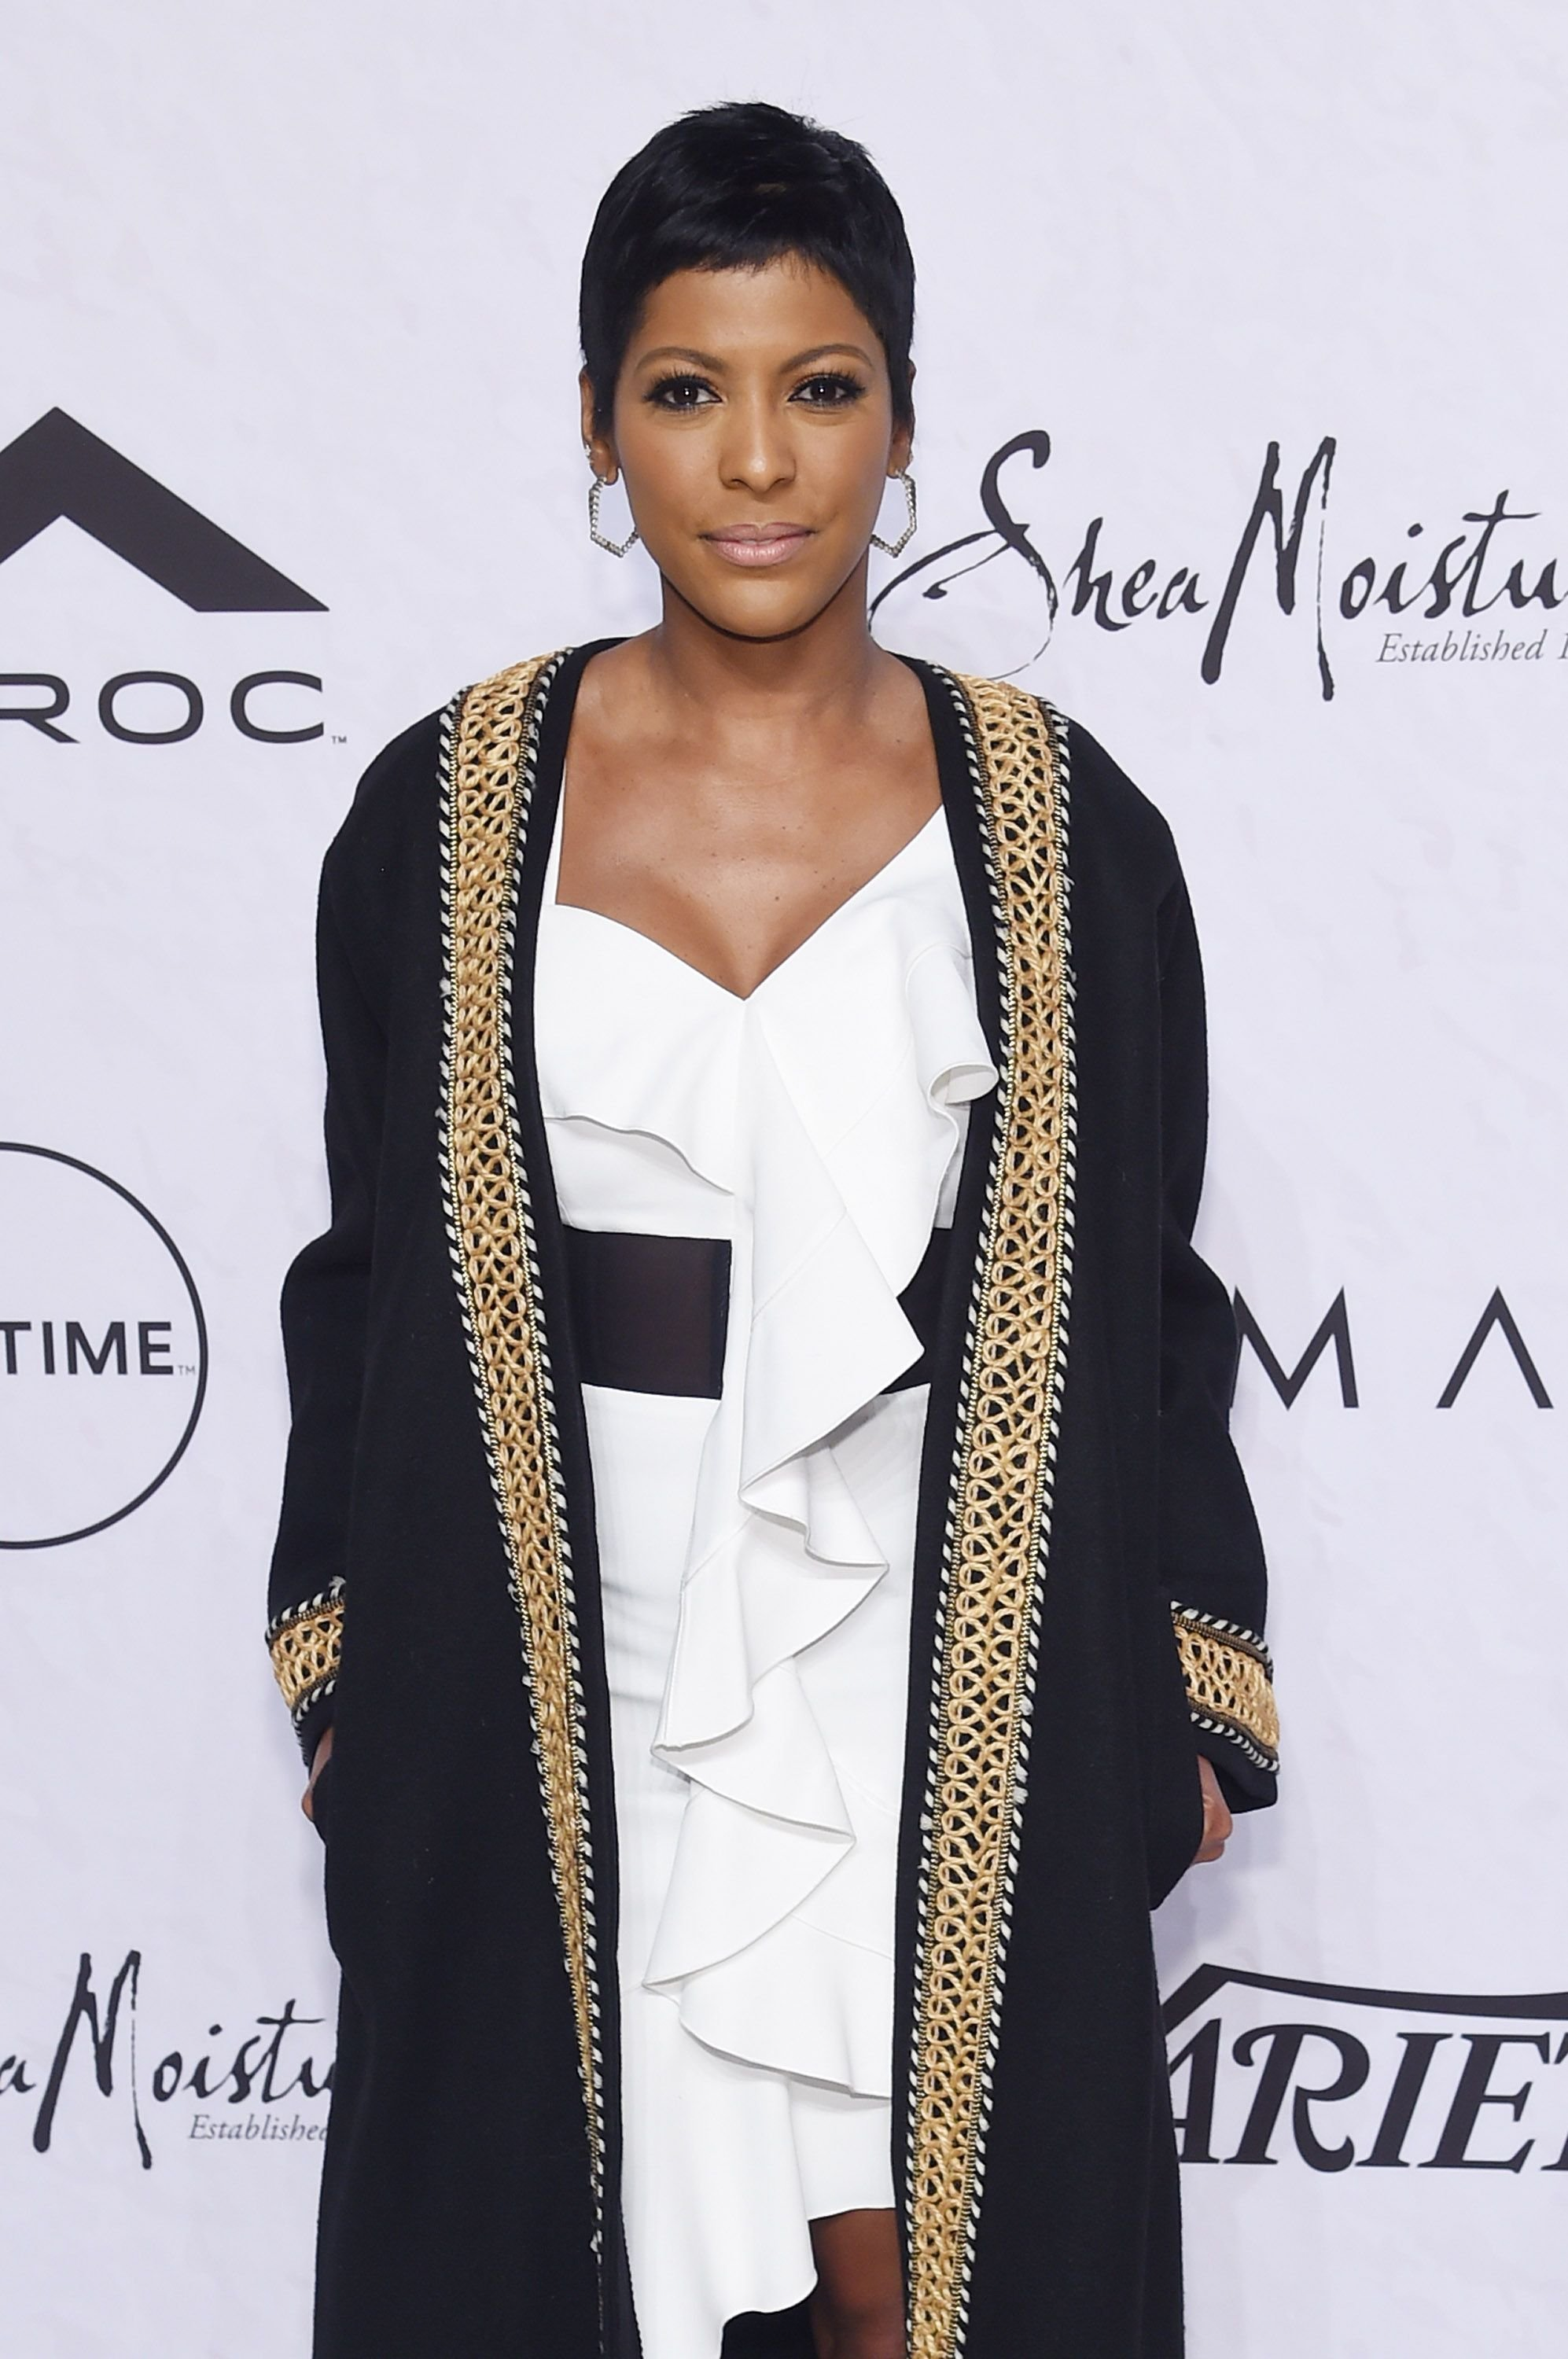 Tamron Hall at Variety's Power of Women on April 13, 2018 in New York. | Photo: Getty Images